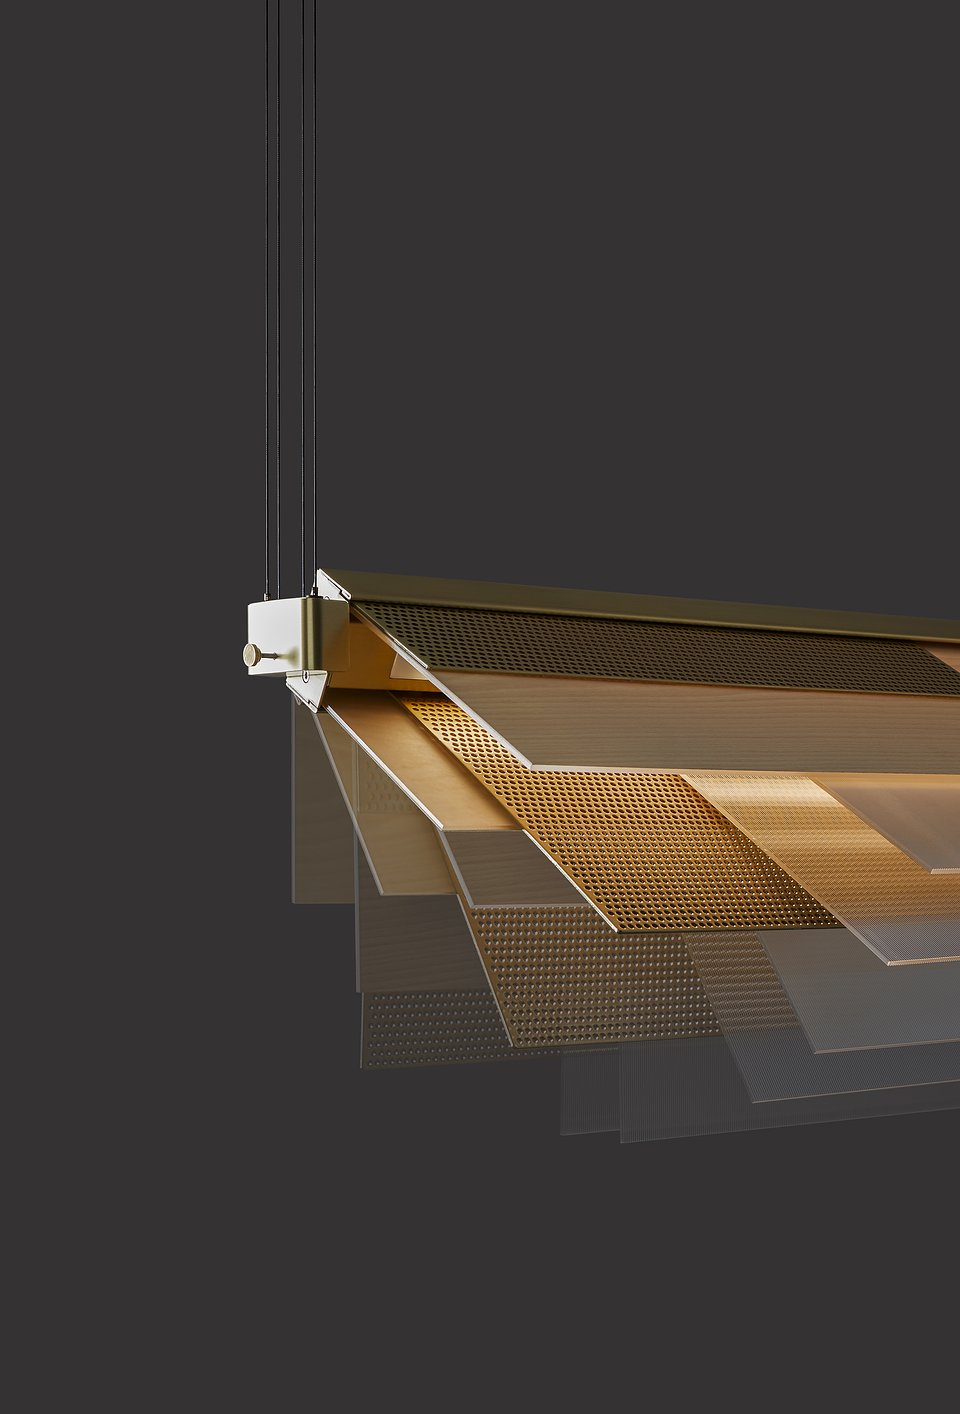 ESTUDIHAC_Skyline_Collection (3).jpg